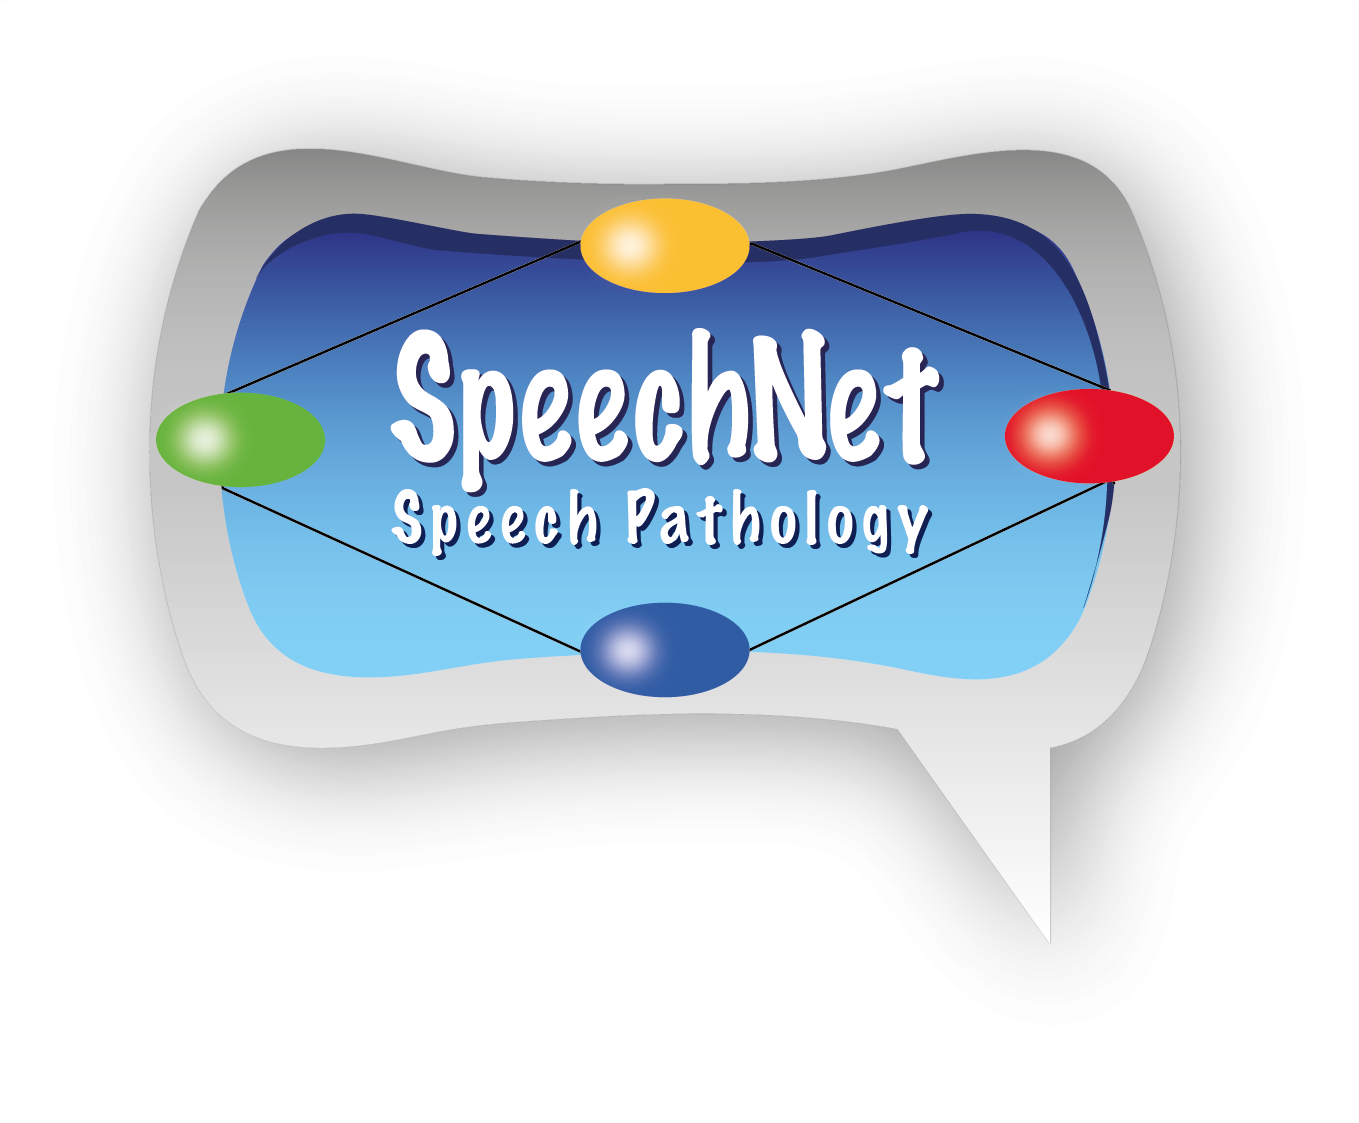 SpeechNet Speech Pathology